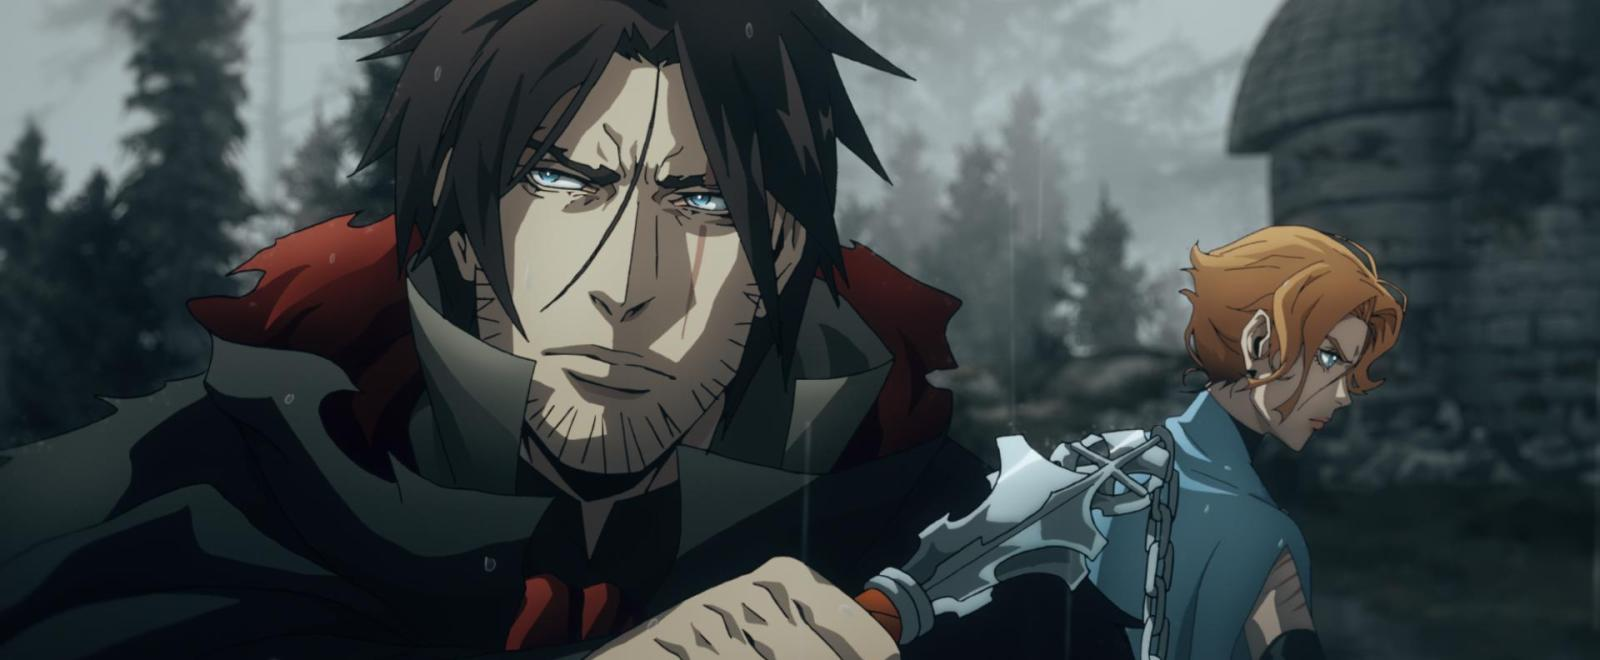 It's Official, Netflix's 'Castlevania' Is Over — Here's What Might Be Next For Its Story